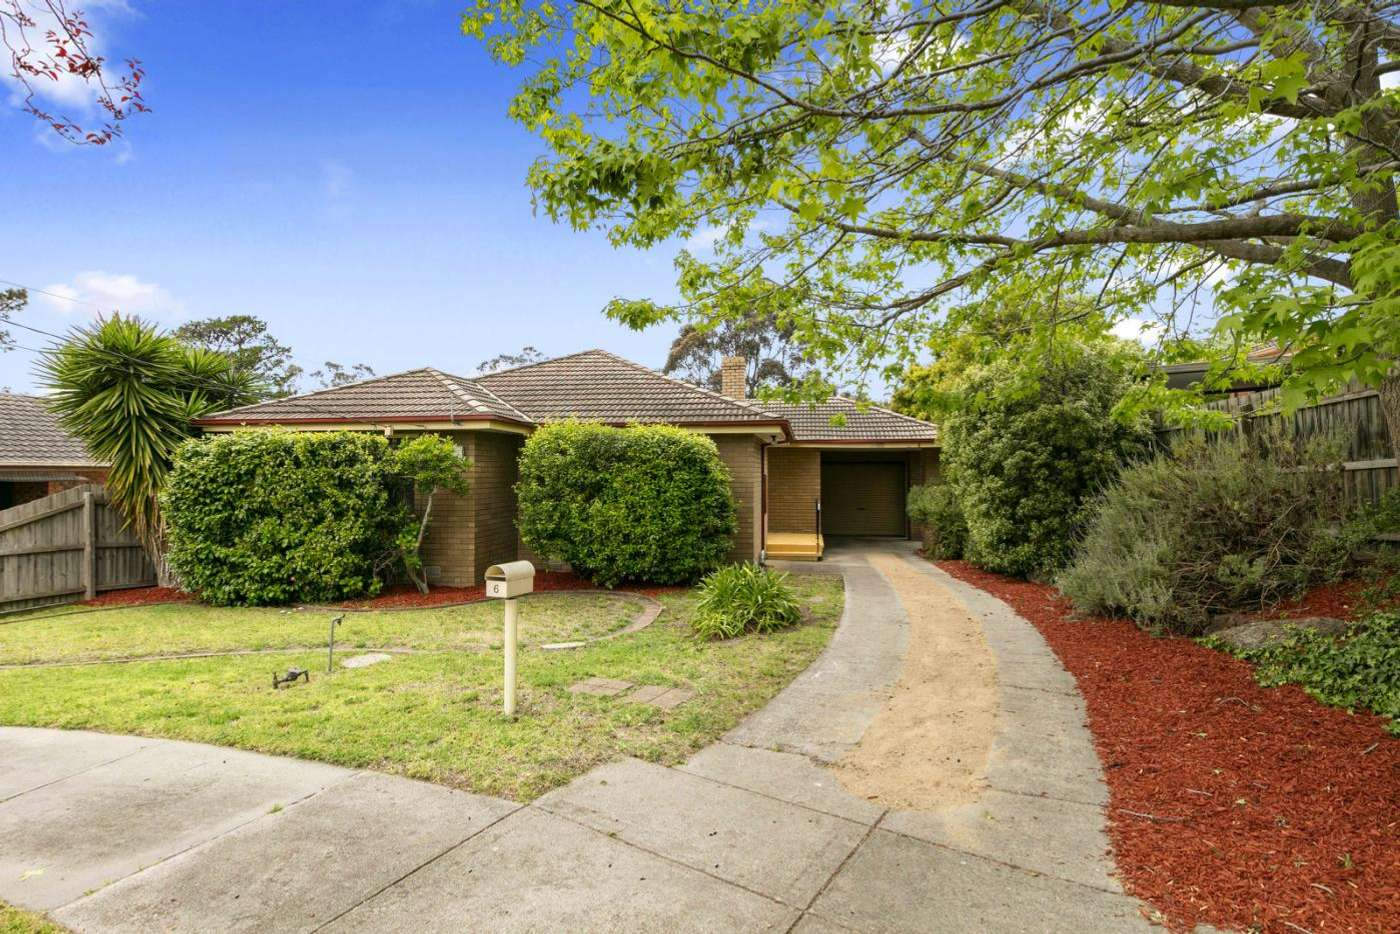 Main view of Homely house listing, 6 Turnberry Court, Frankston VIC 3199